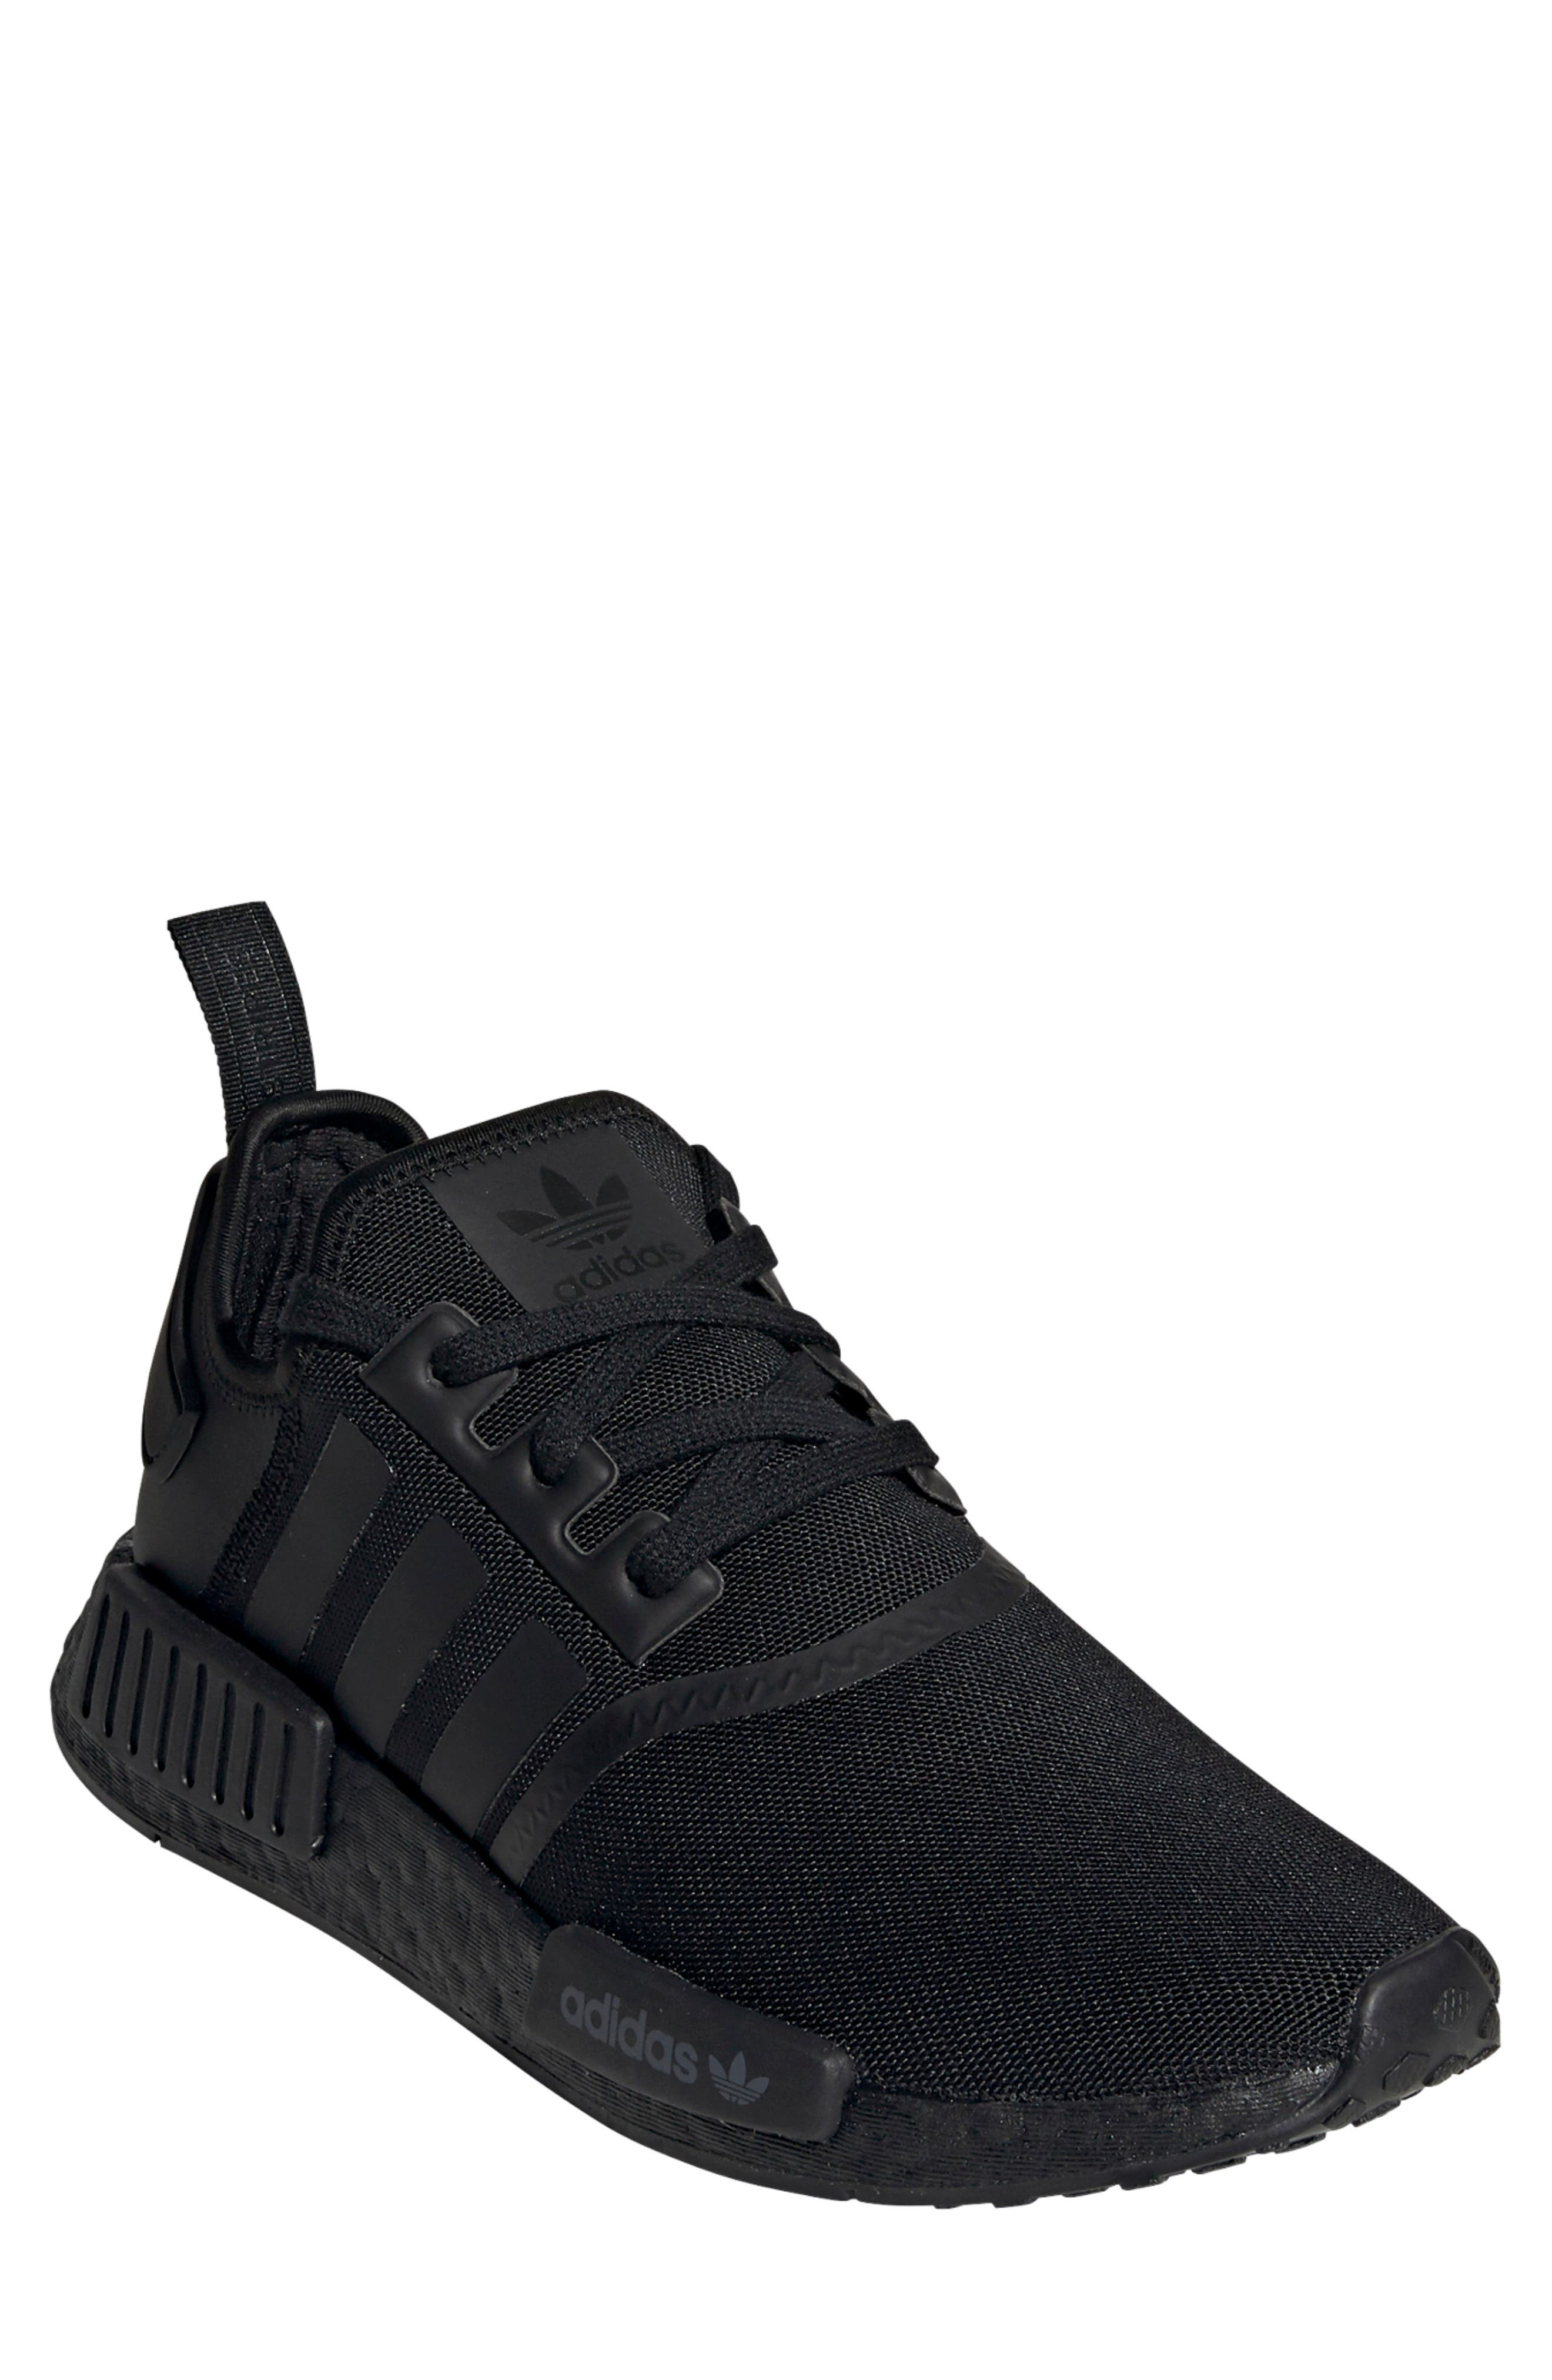 NMD R1 Athletic Shoe